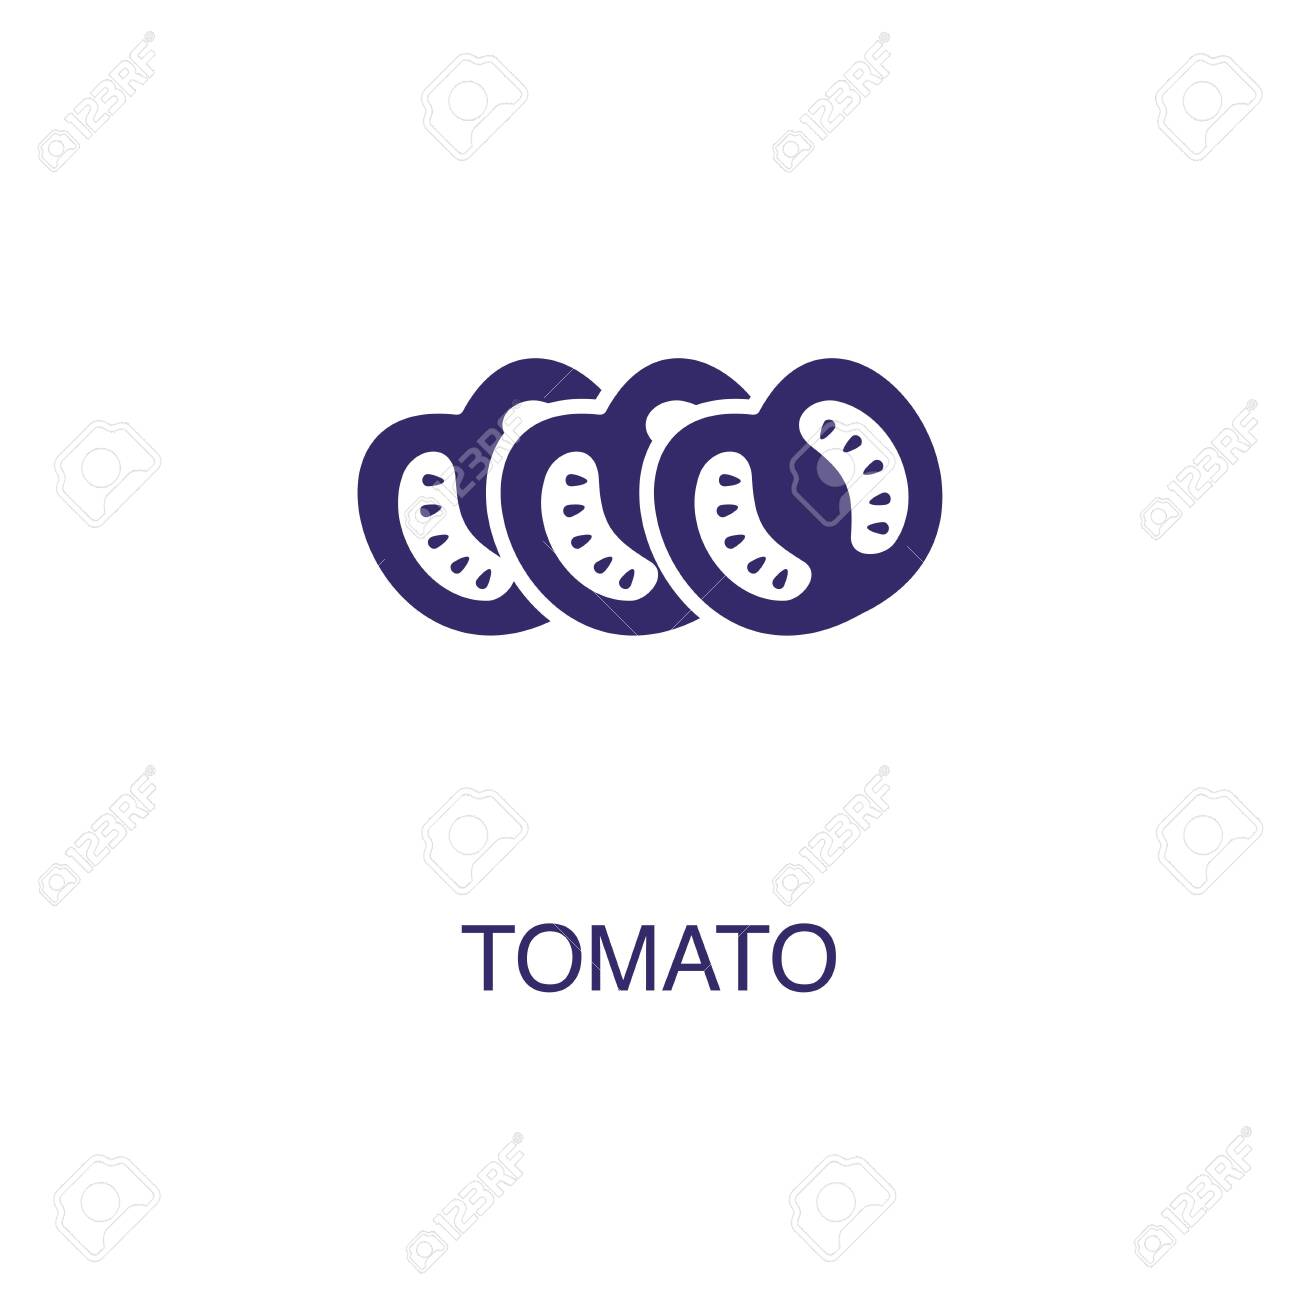 Tomato element in flat simple style on white background. Tomato icon, with text name concept template - 134450366